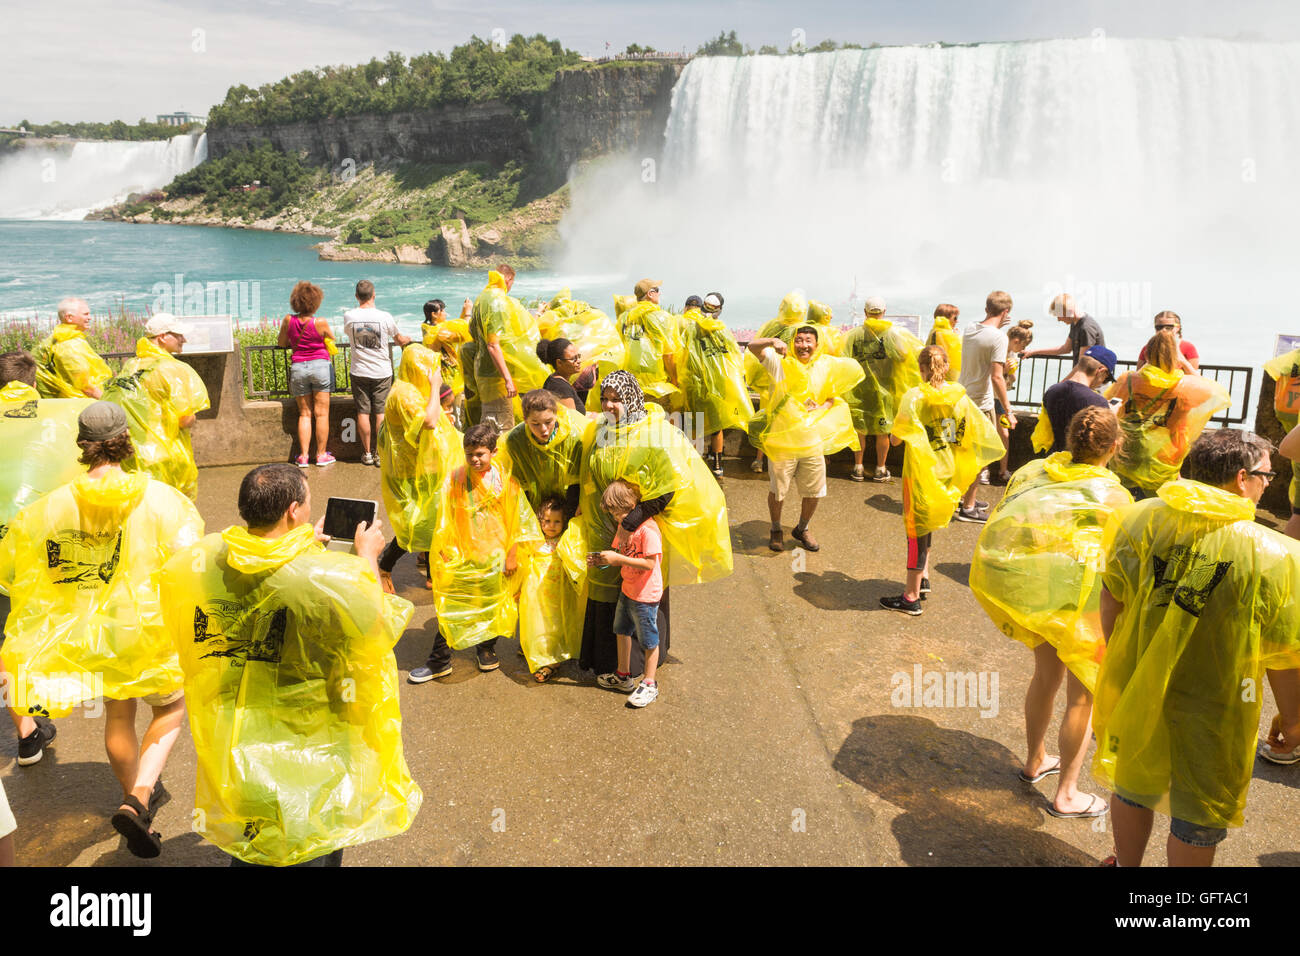 Niagara Falls, Canada - tourists on the Lower Observation Deck at the foot of the falls wearing distinctive yellow - Stock Image